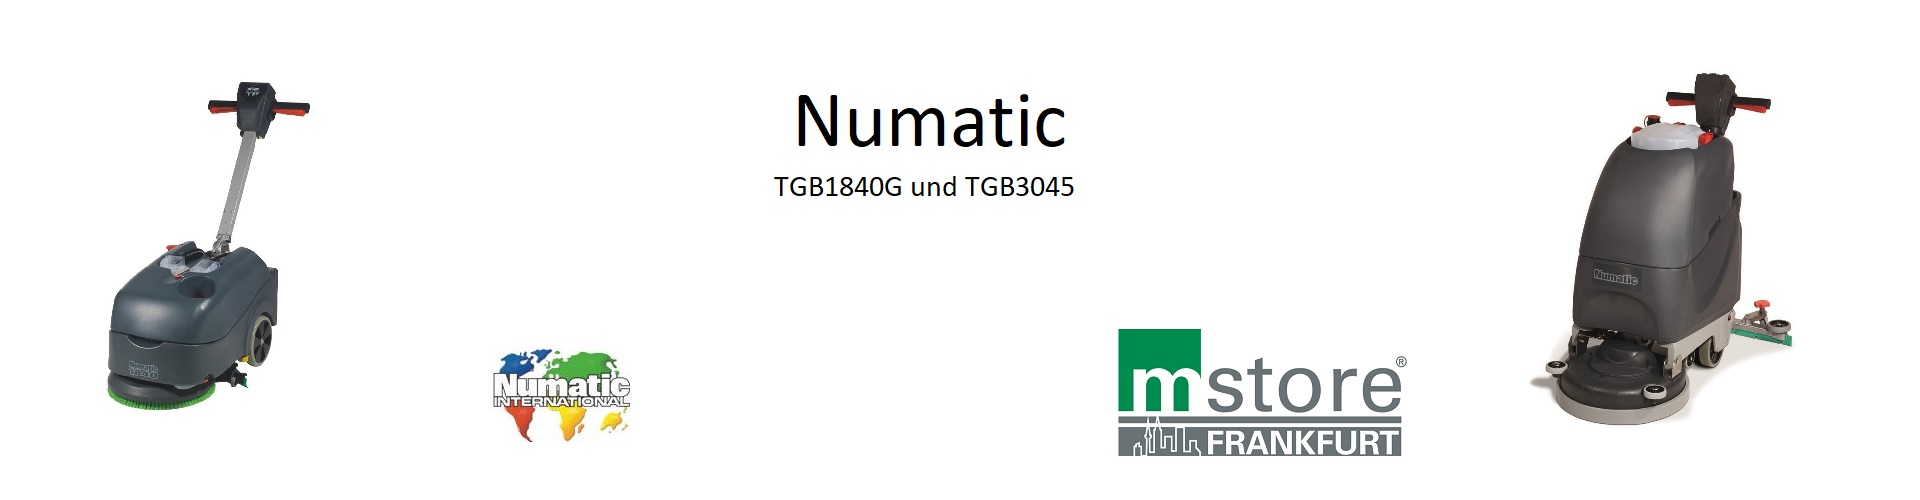 Numatic Slider 1